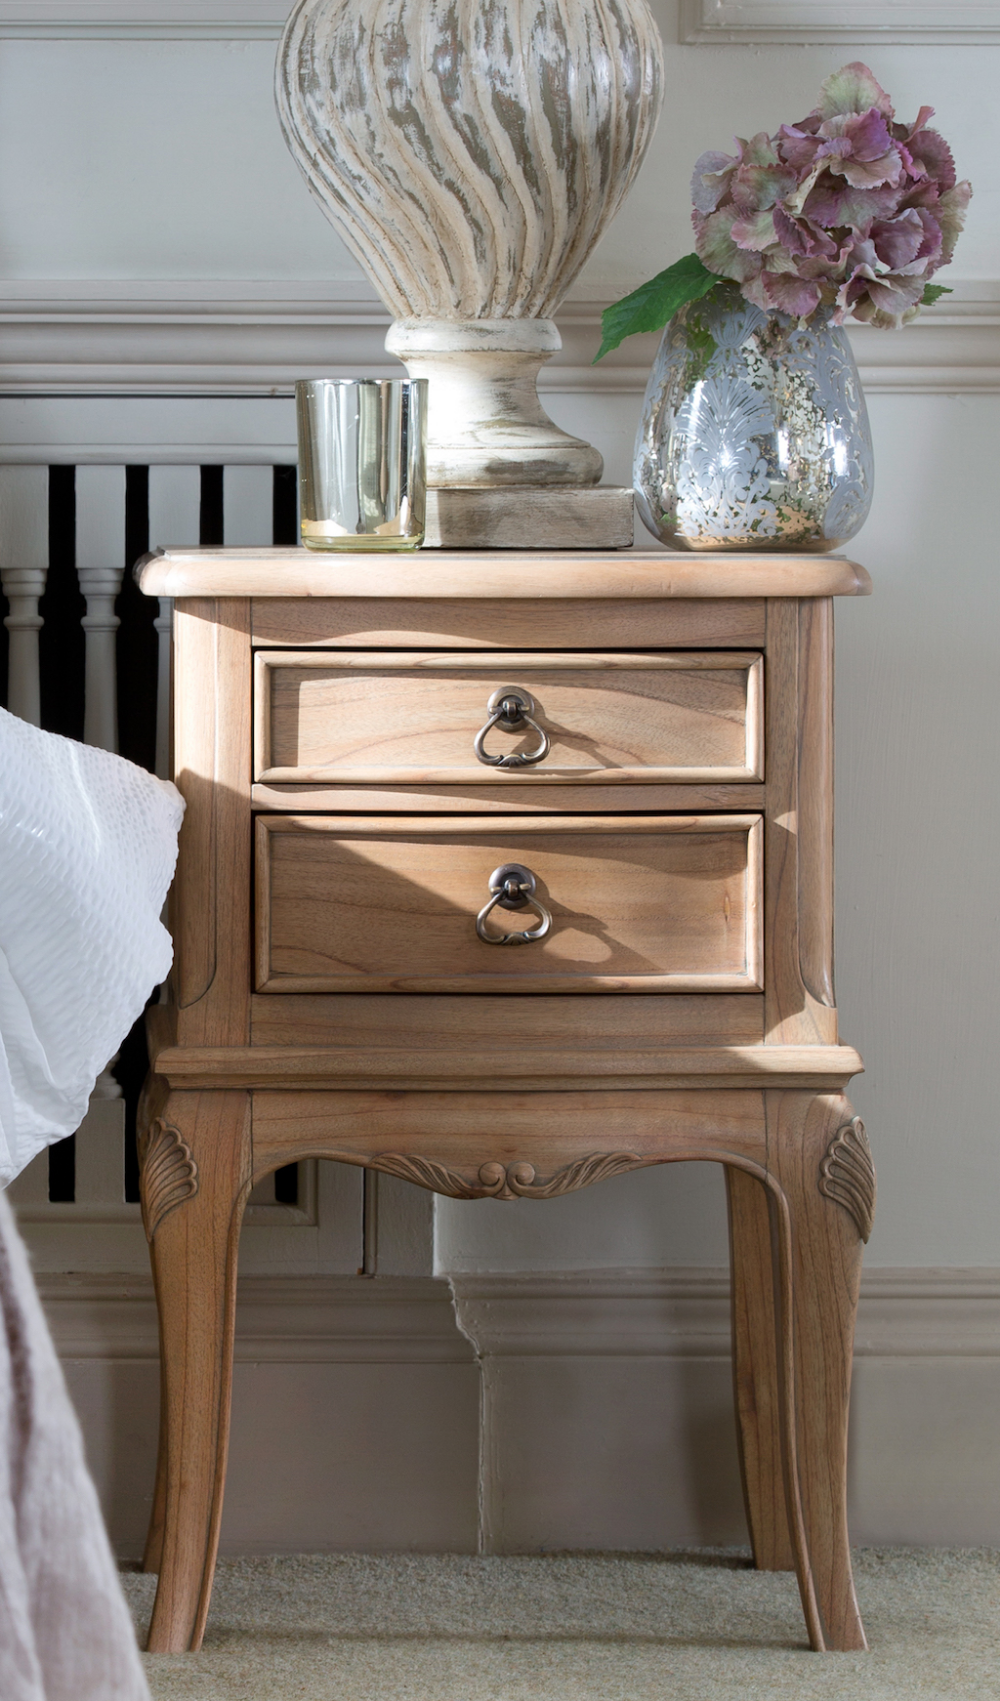 Avignon French Mindy Wood Bedside Table Bedside table